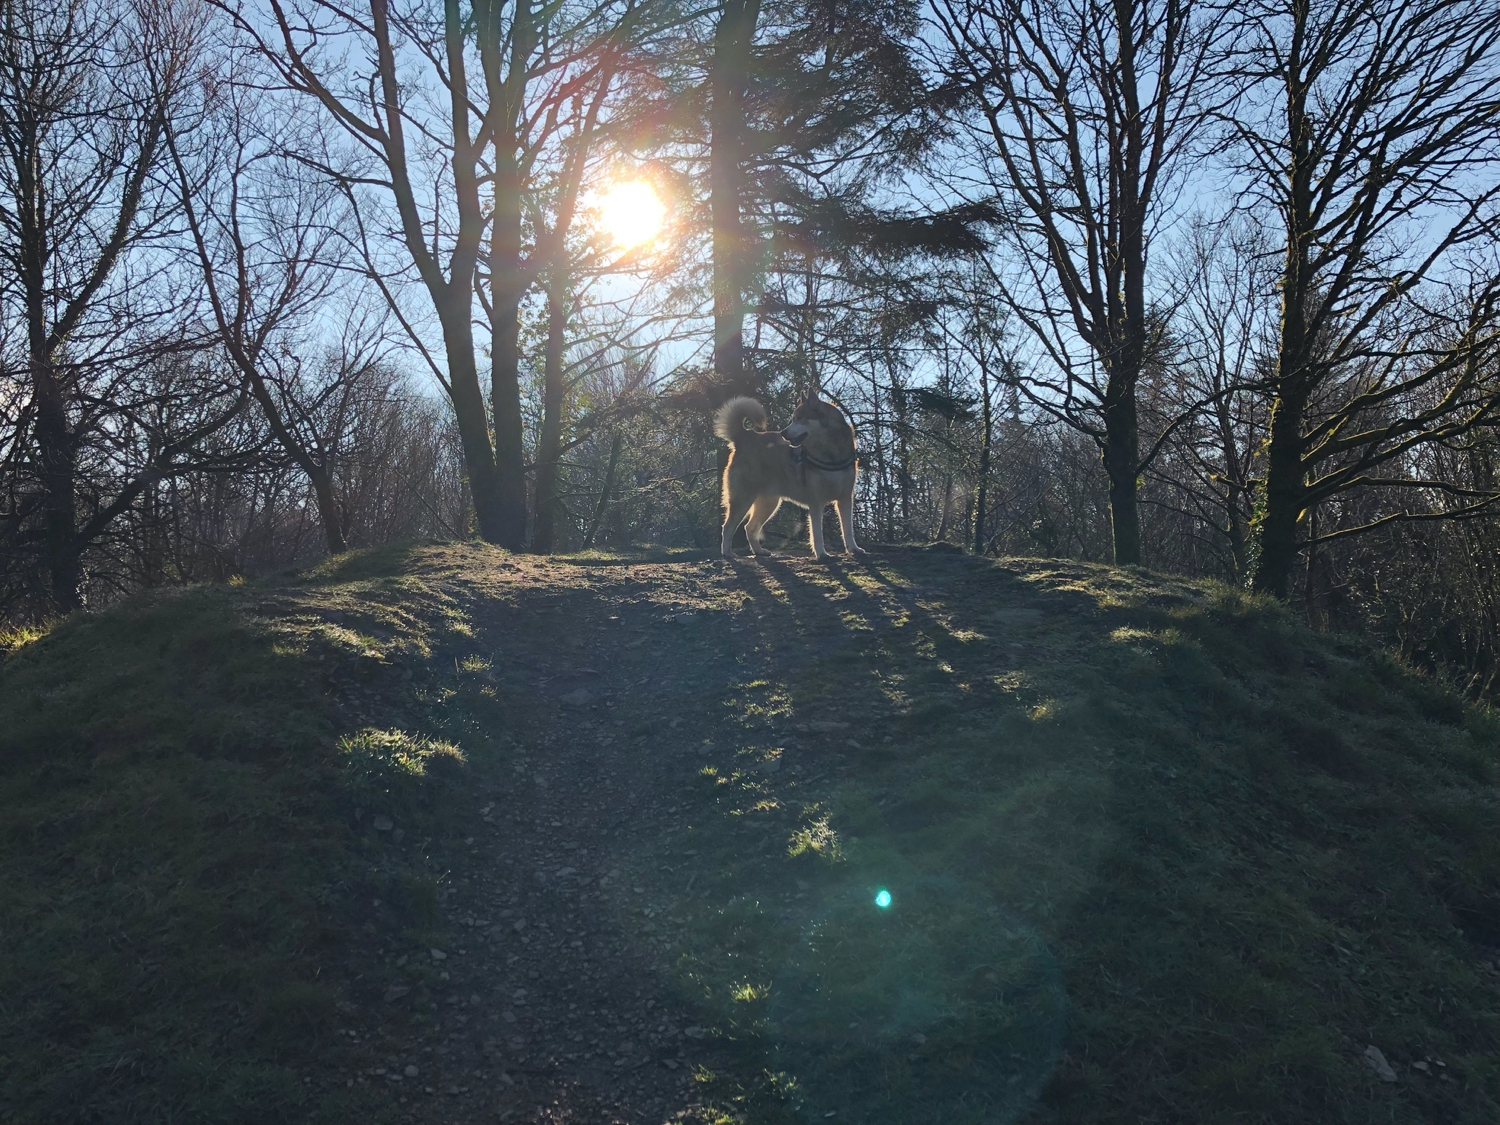 Osky on top of a mound in some sunny woods. He looks majestic.